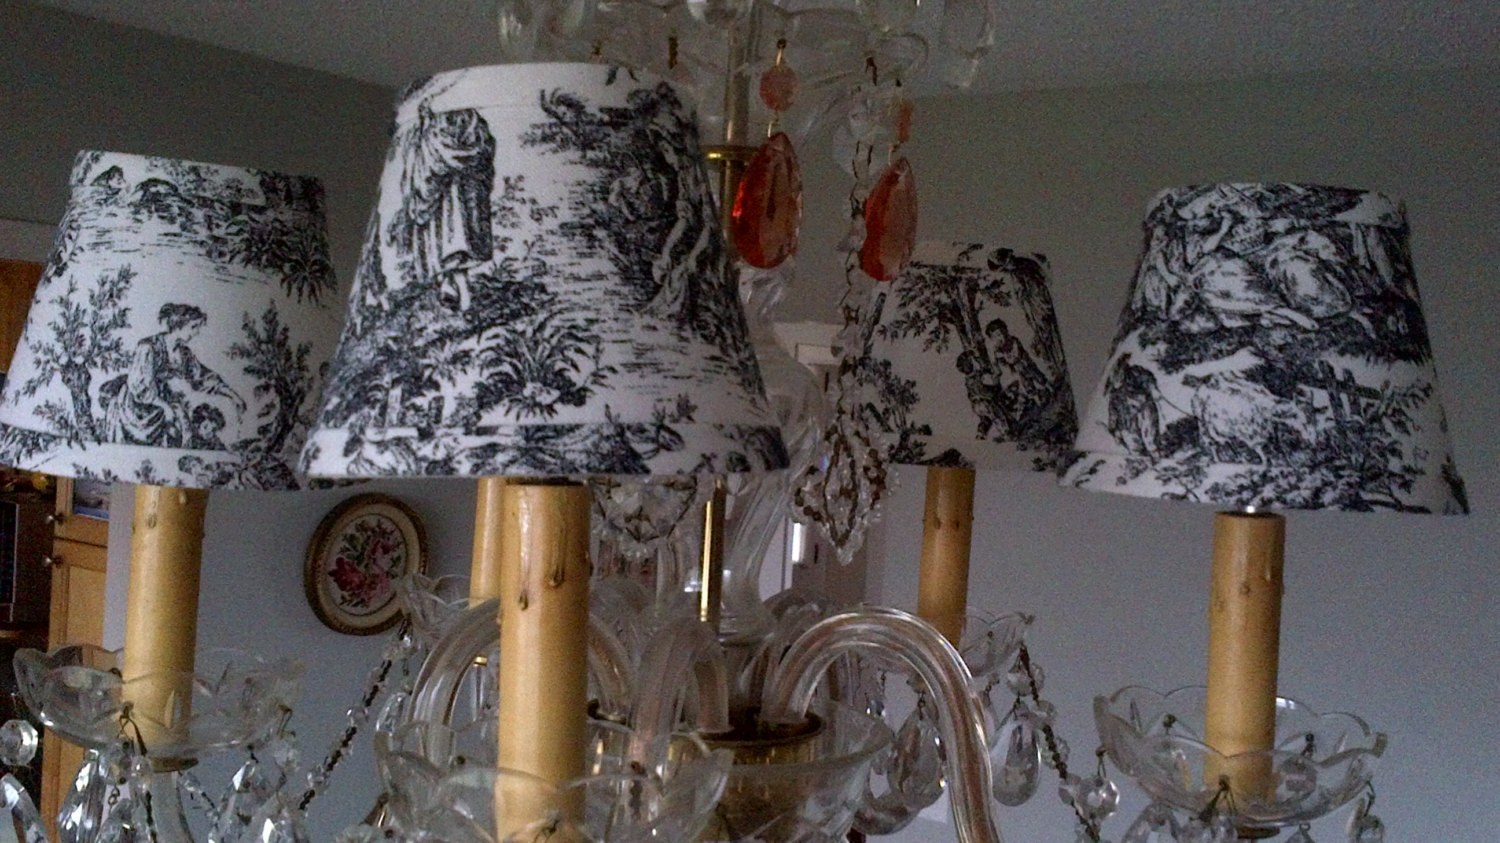 Lamp Shades 2017 Inspire Chandelier Lampshades Diy Design Glass With Chandelier Lampshades (Image 17 of 25)